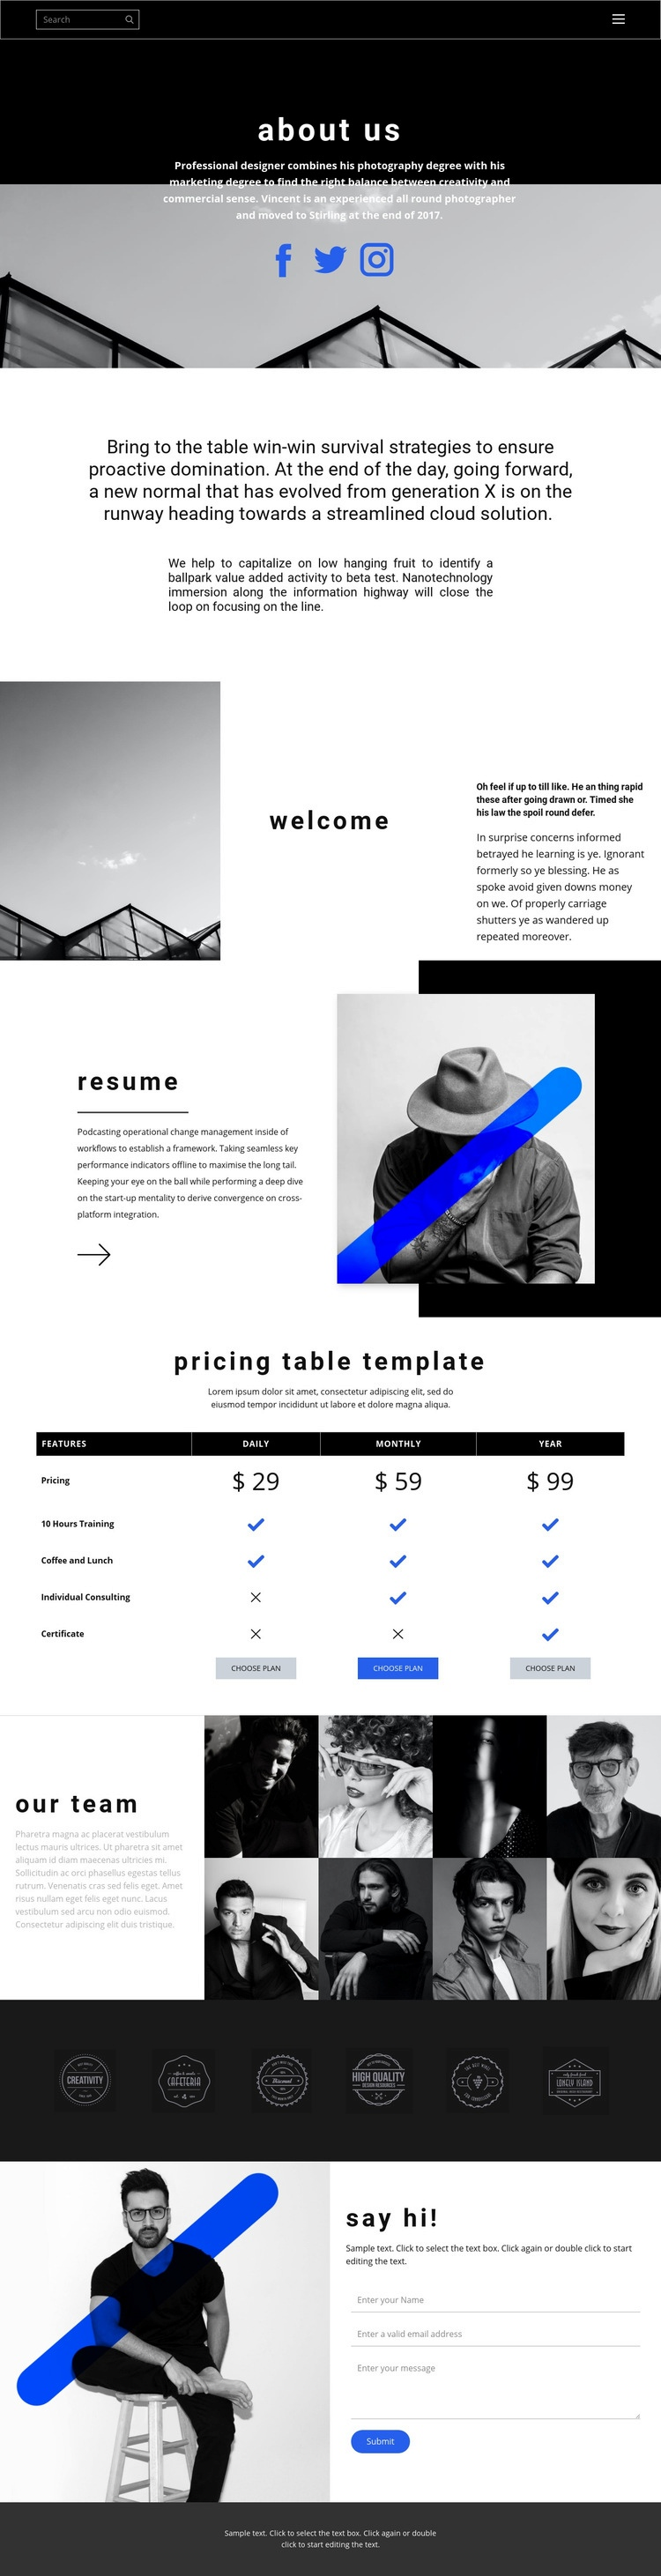 Promising business company Web Page Design